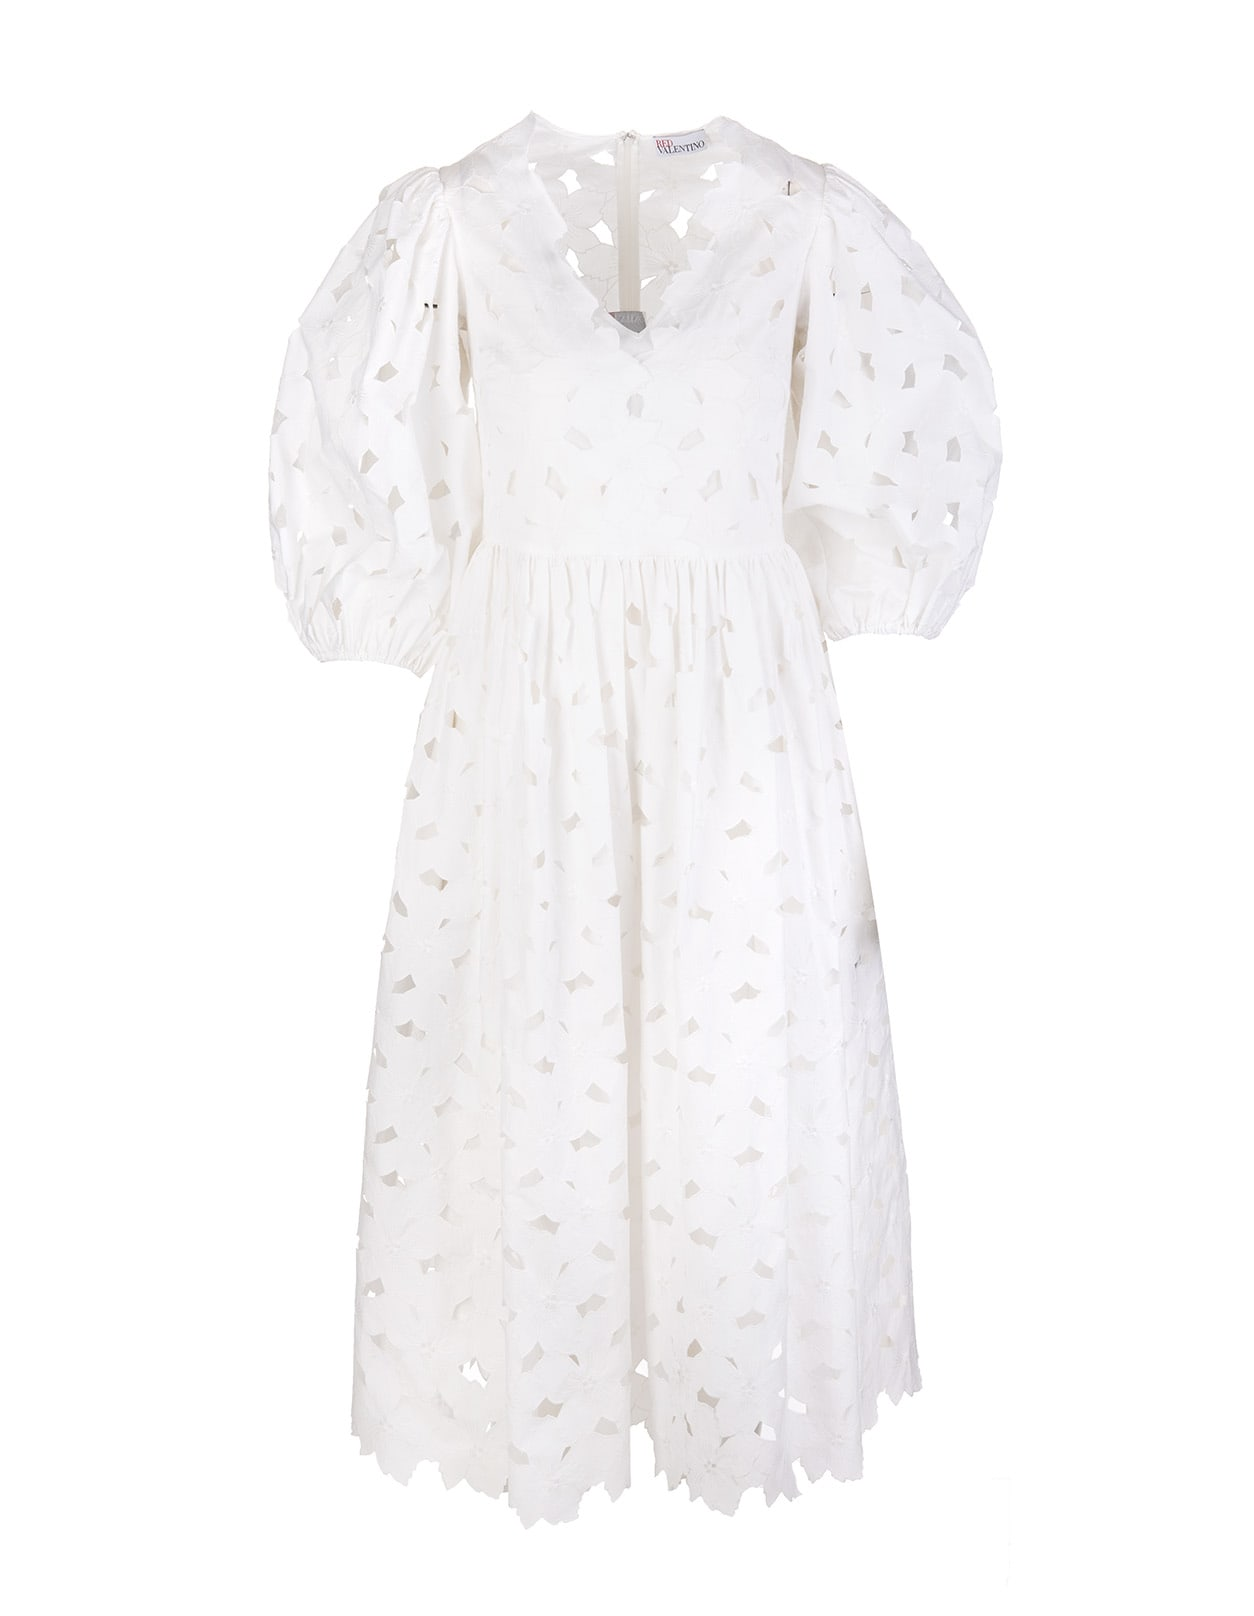 Buy RED Valentino White Cotton Poplin Midi Dress With Cut-out Flowers Embroidery online, shop RED Valentino with free shipping